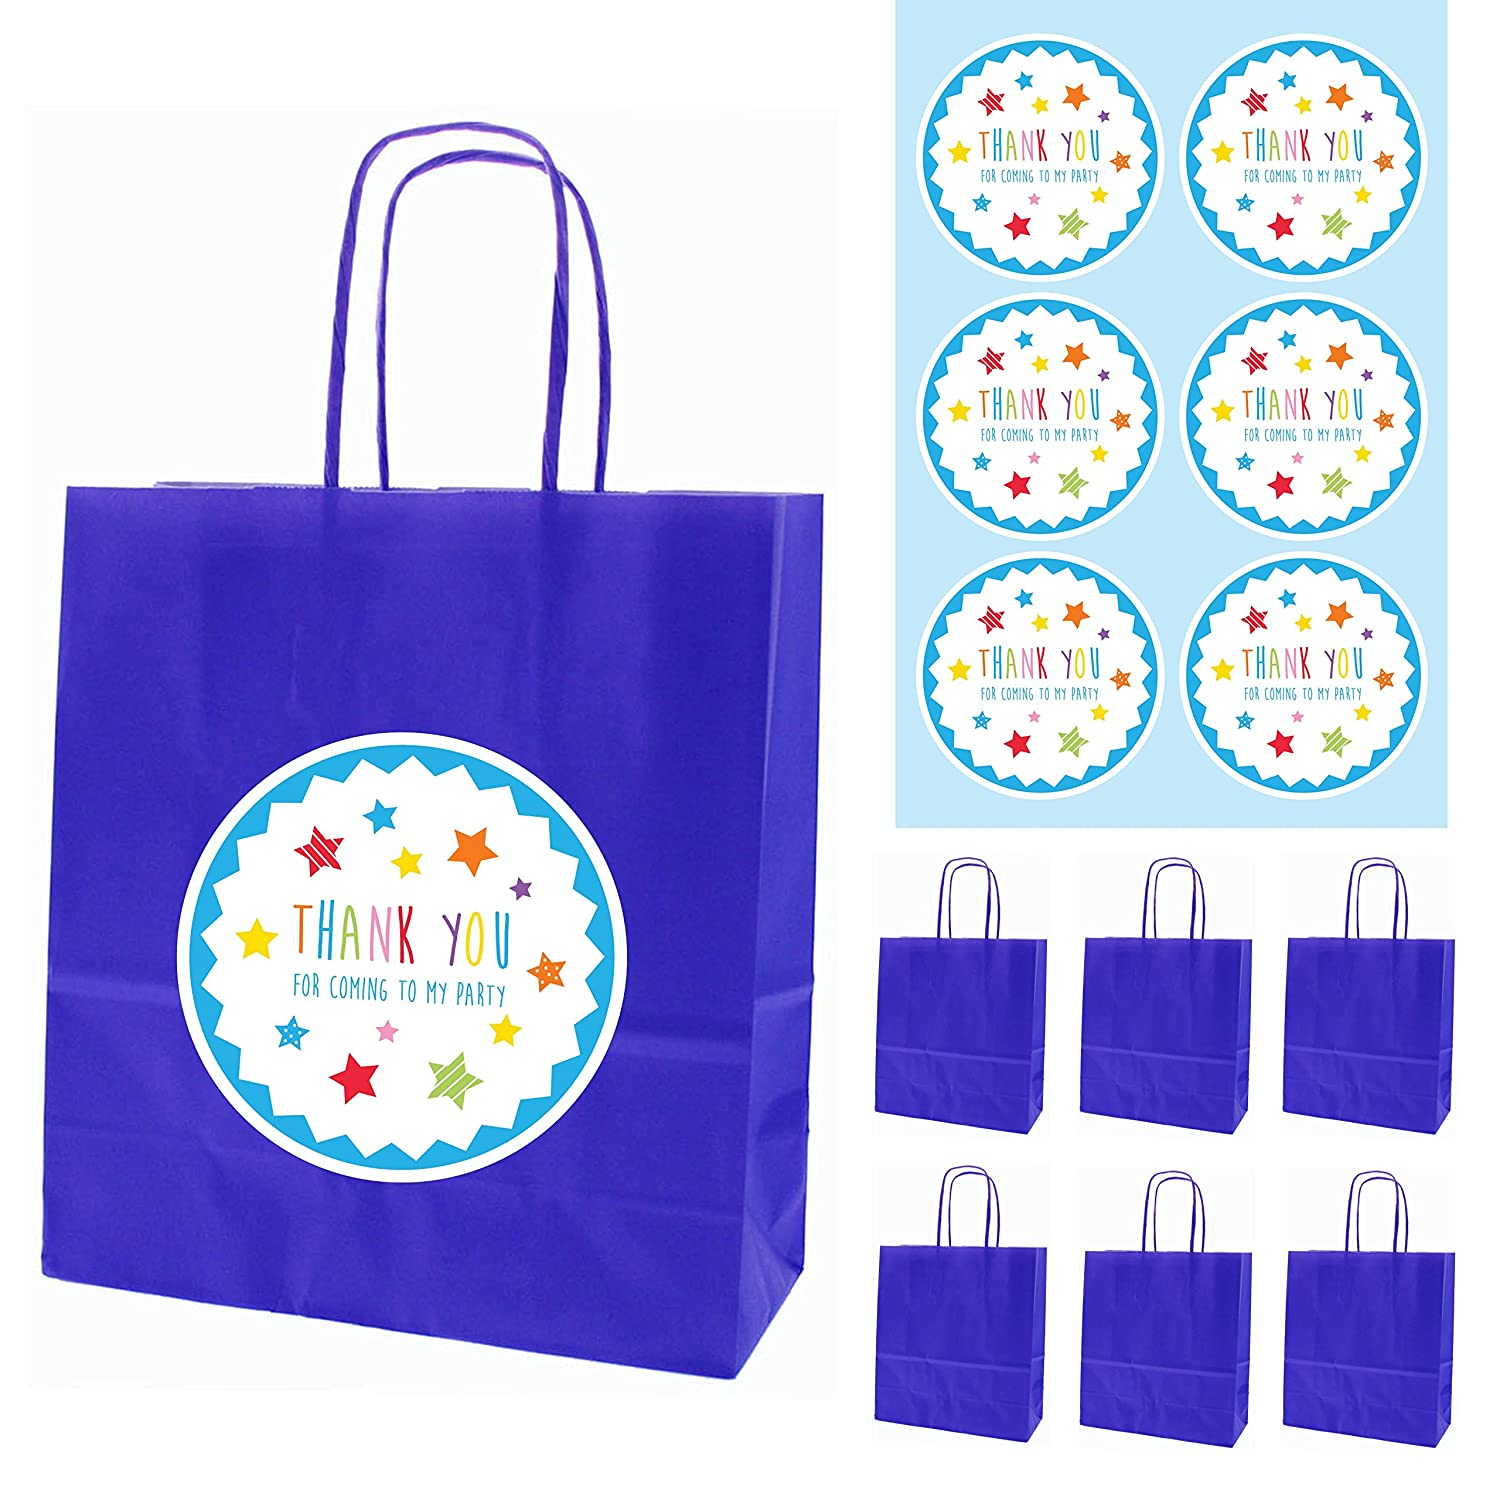 6 Royal Blue Paper Party Bags with Twisted Paper Handles & 6 'Thank You For Coming To My Party' Stickers (6 Blue Bags & Stars Stickers) The Curious Caterpillar